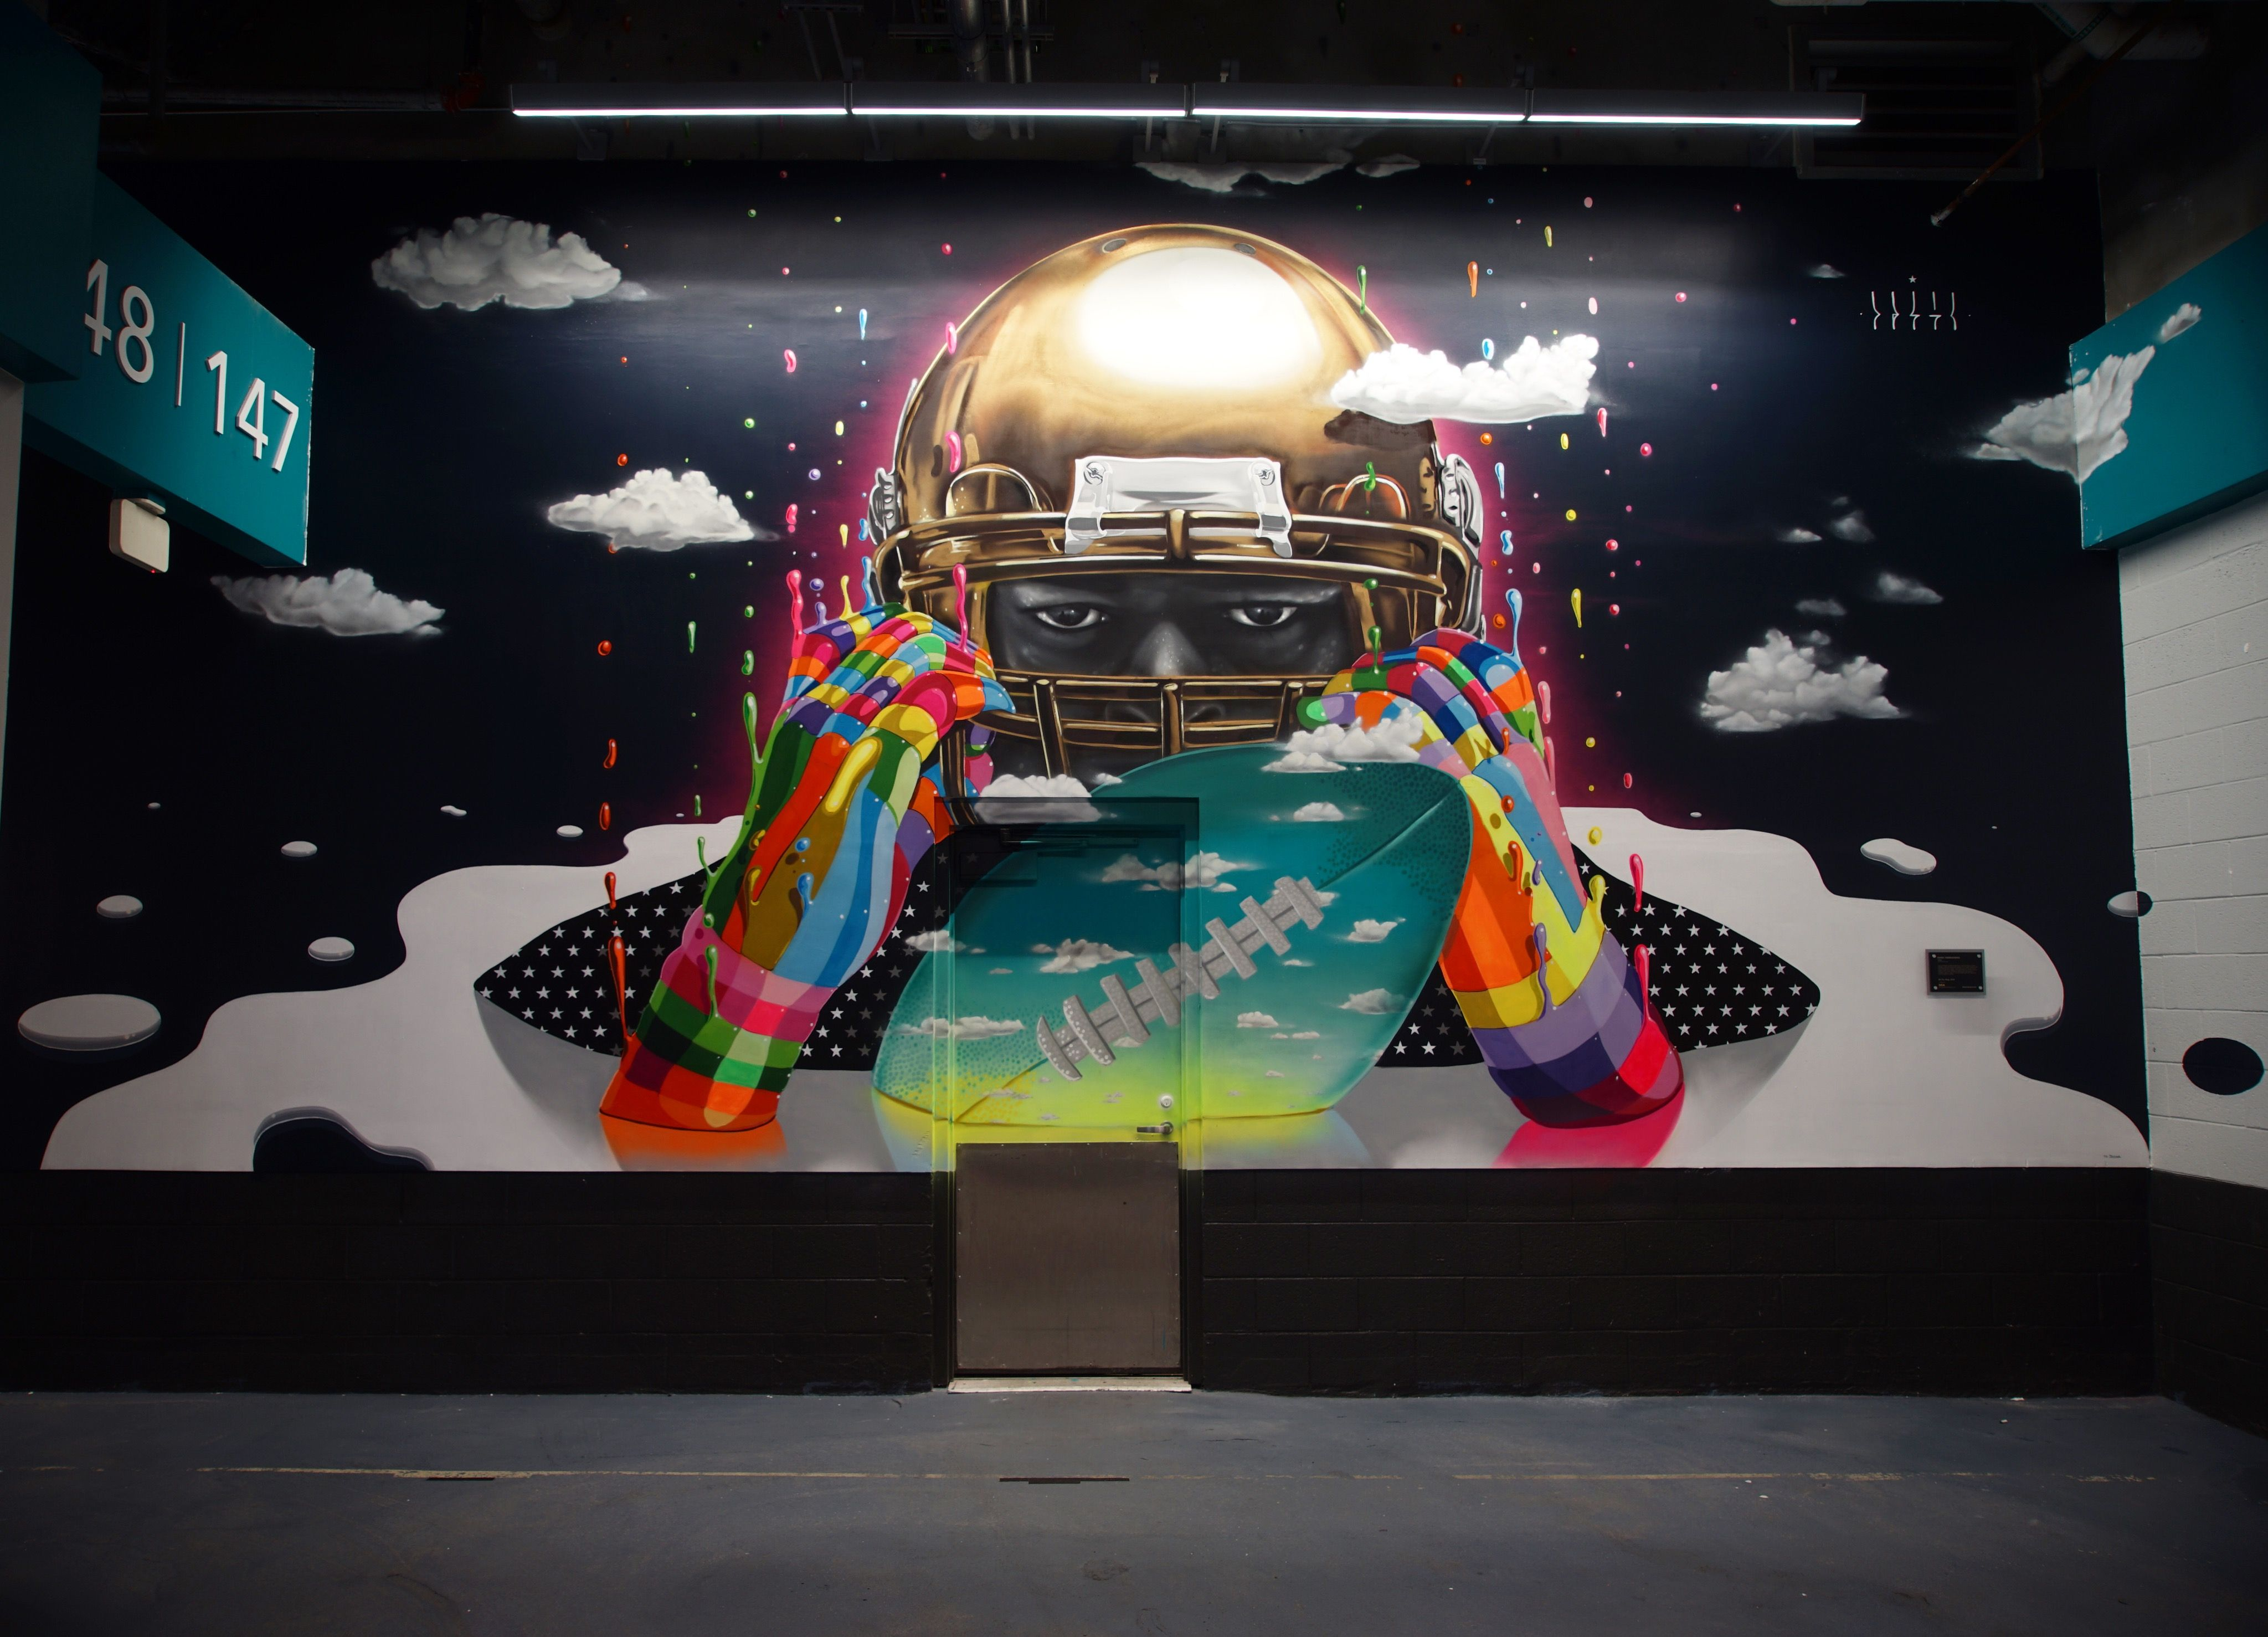 Street artists paint the walls of the new miami dolphins stadium mural for the miami dolphins stadium by dasic fernandez voltagebd Choice Image